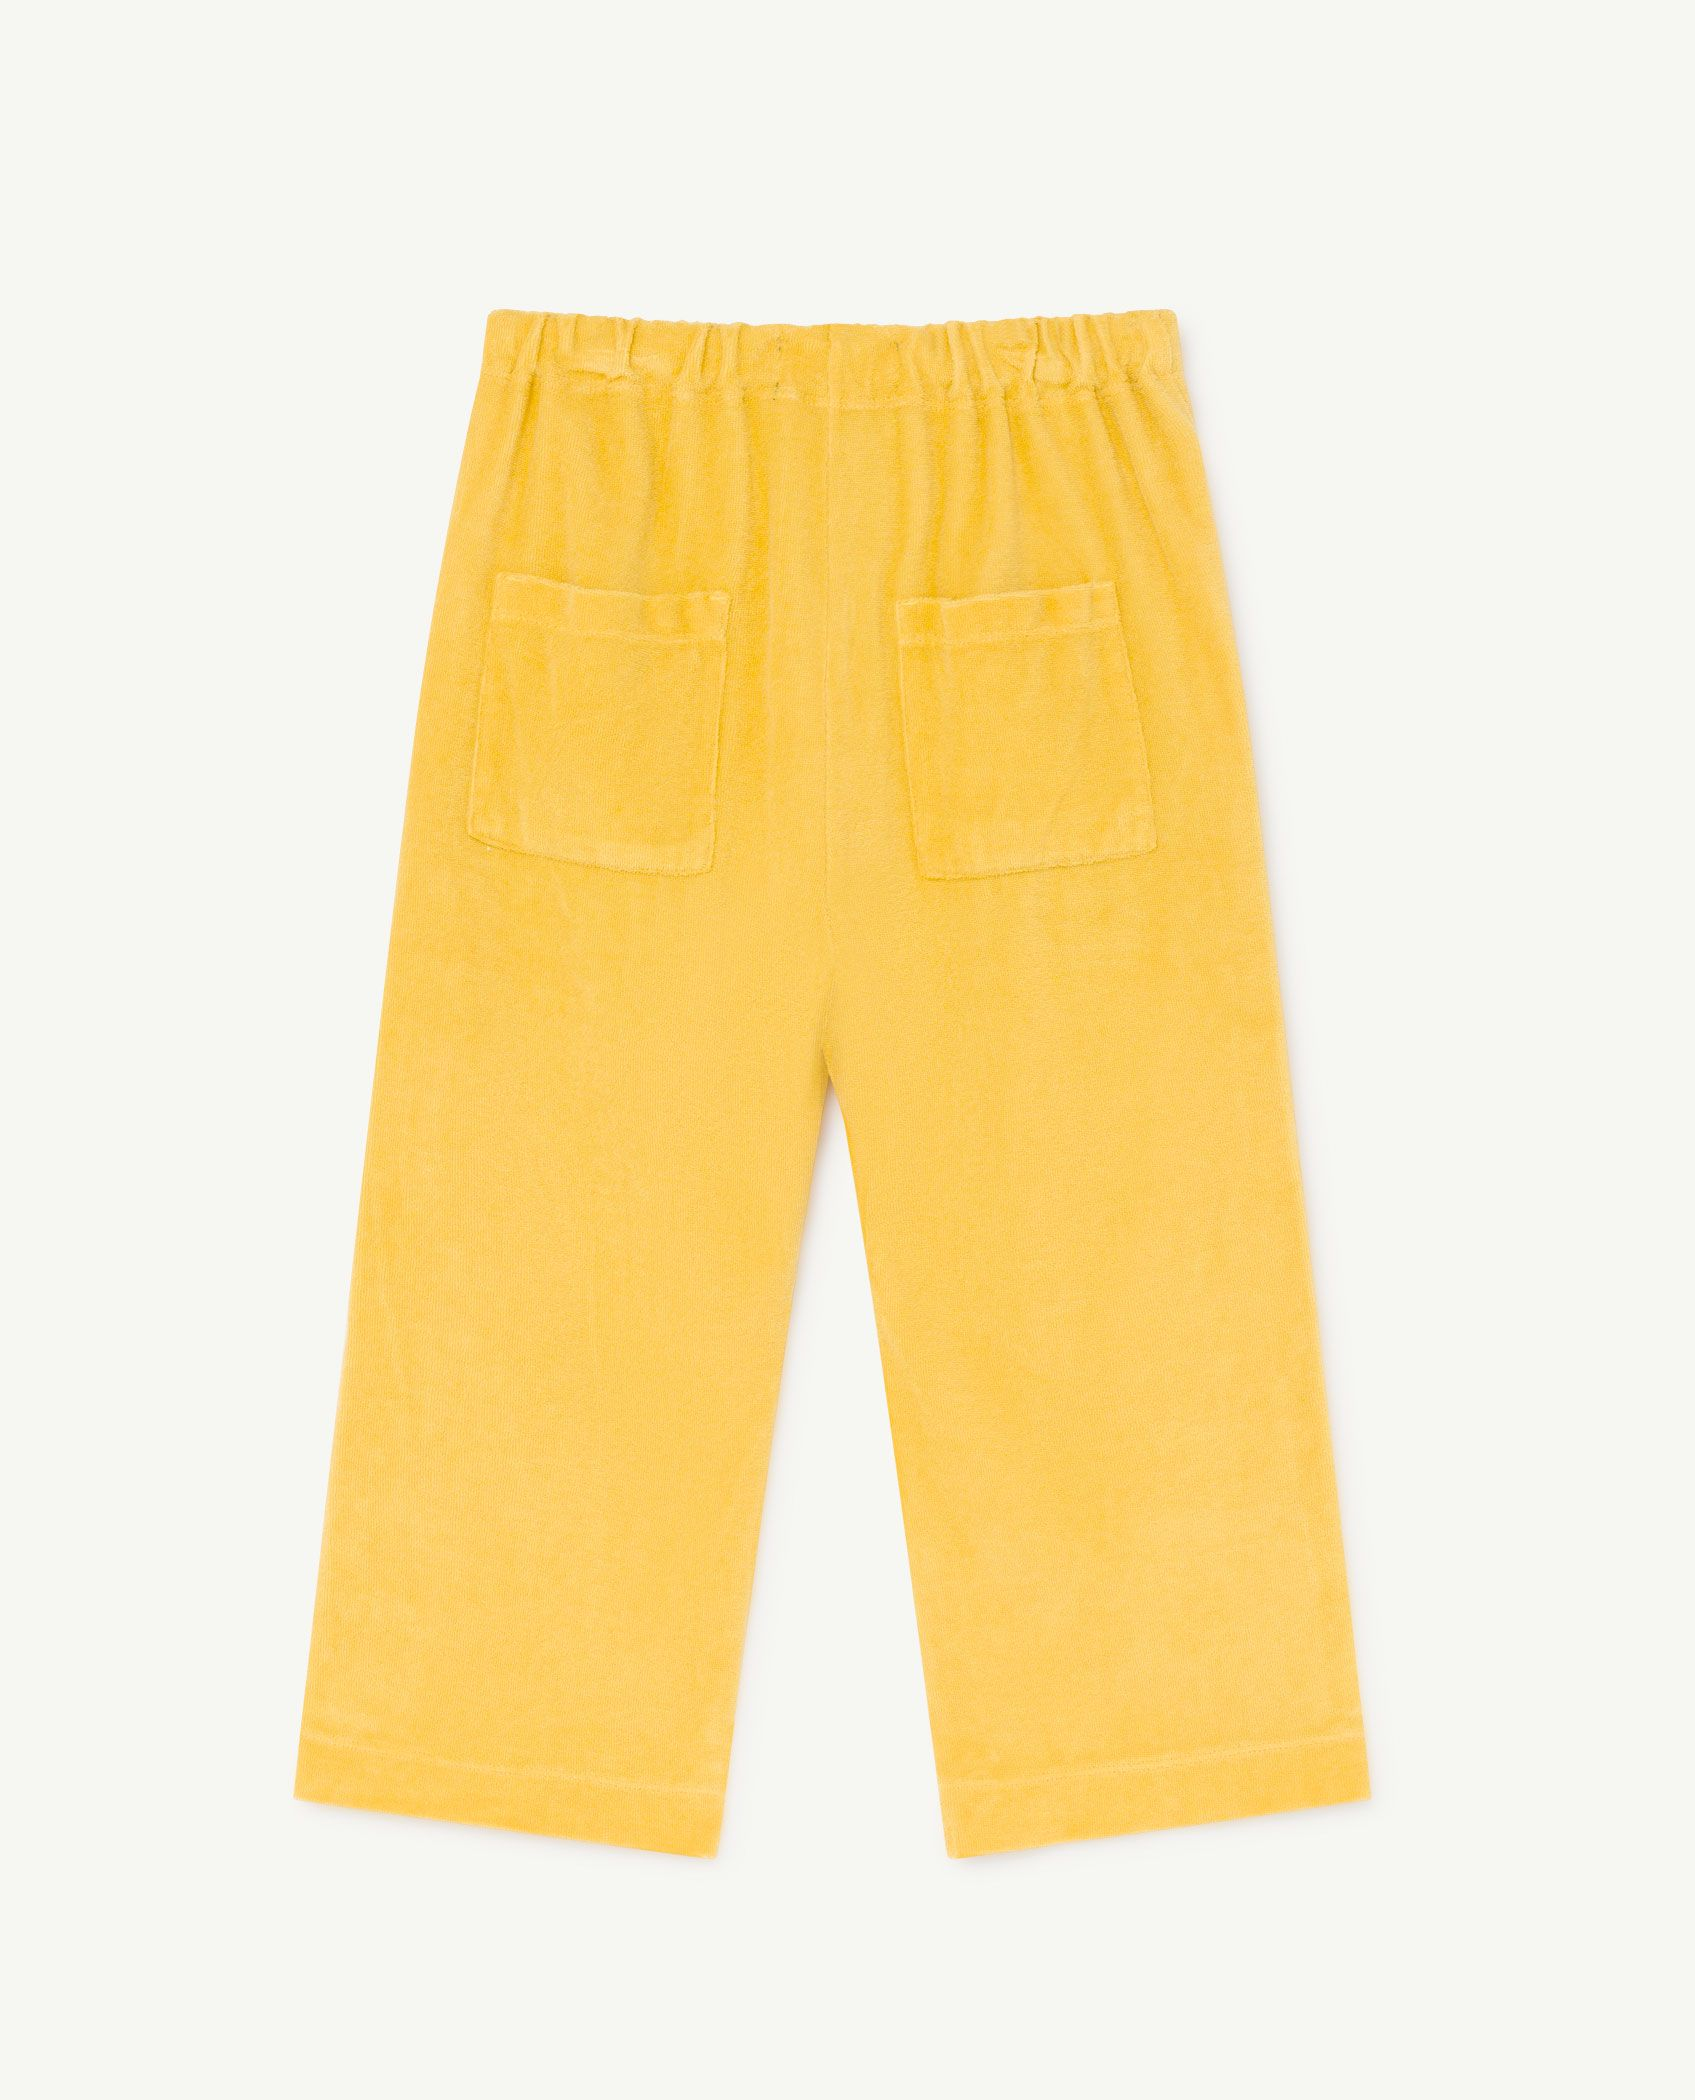 Yellow Porcupine Pants img-2